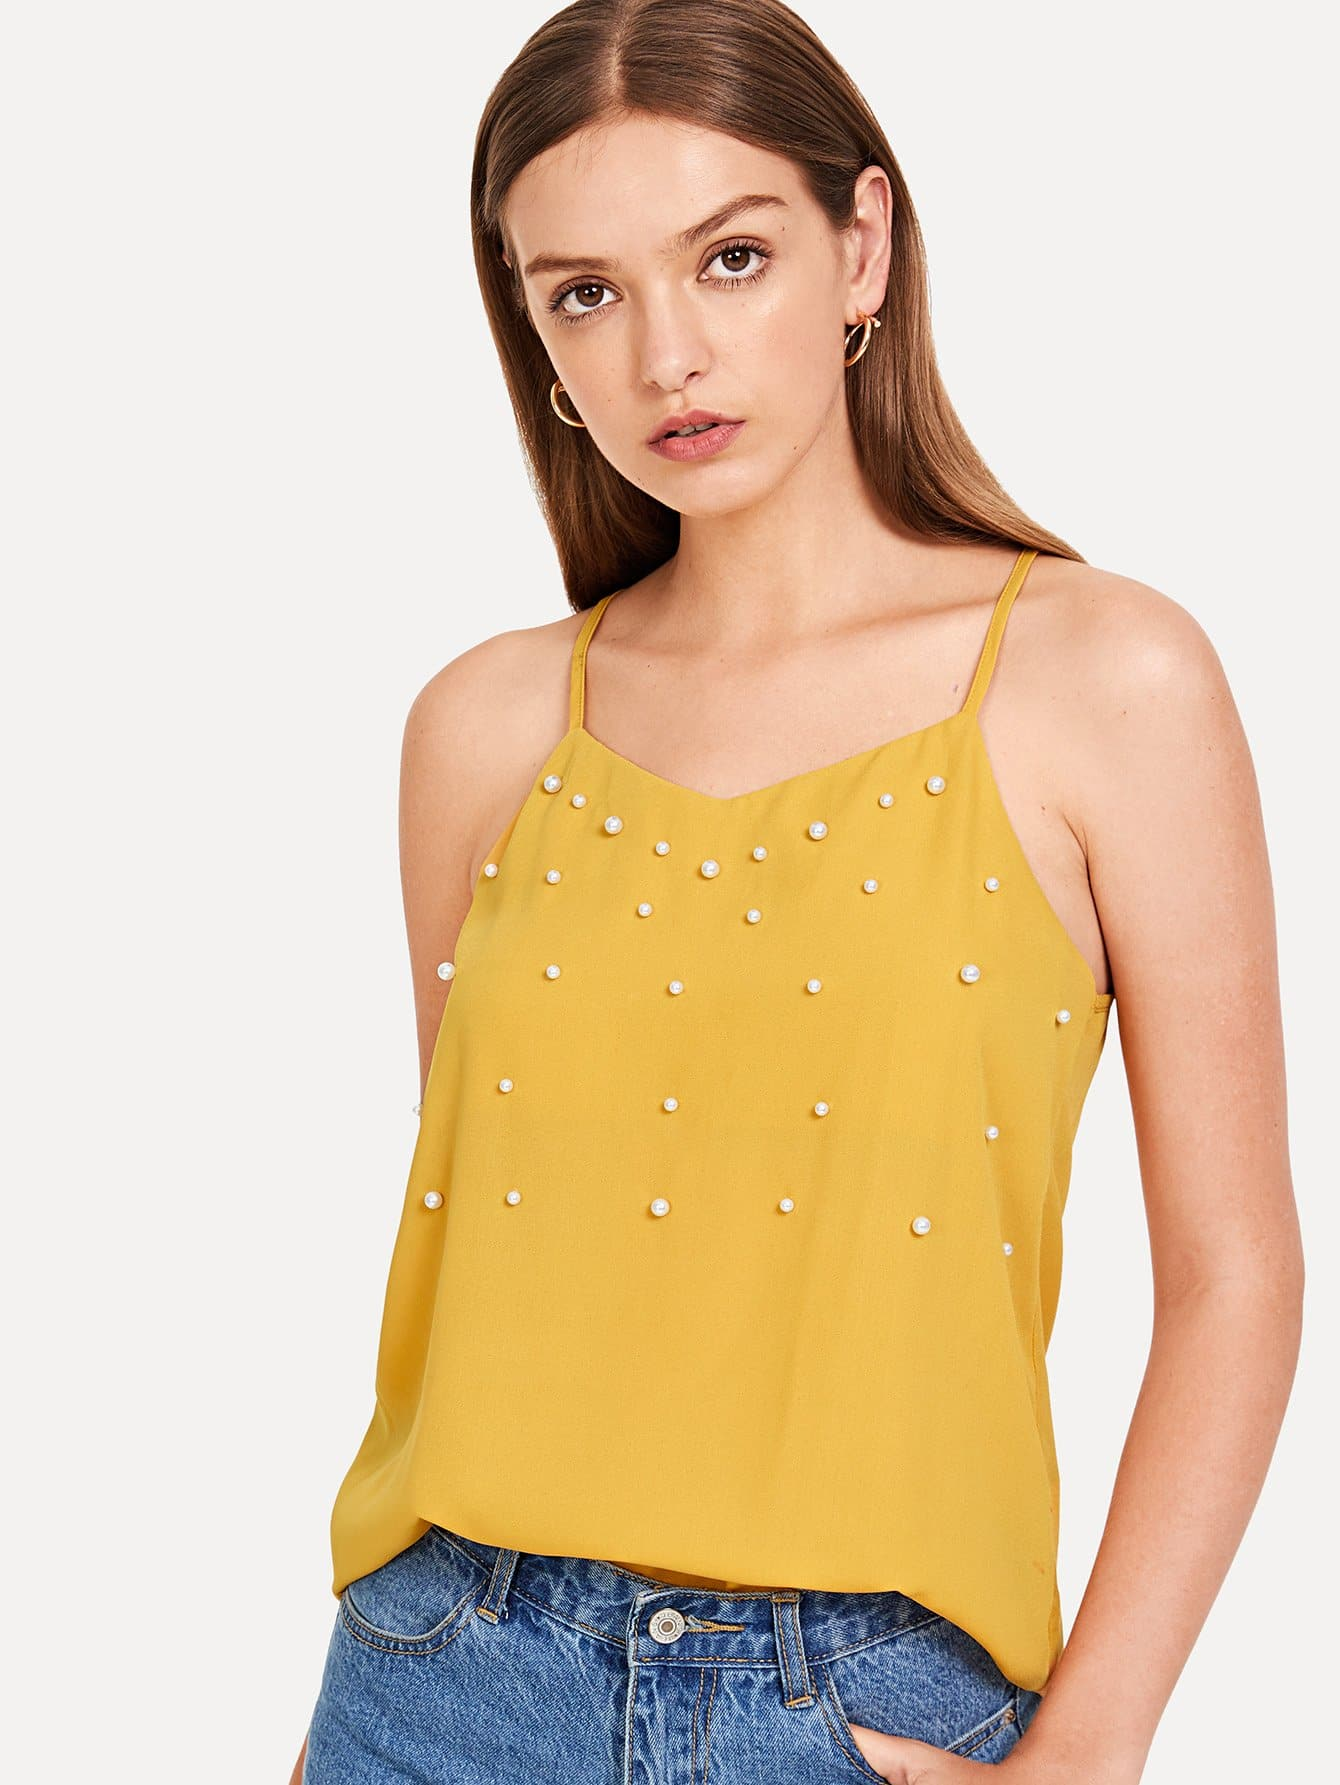 Pearl Embellished Racerback Cami Top trendy tassel trim pearl embellished cami top for women